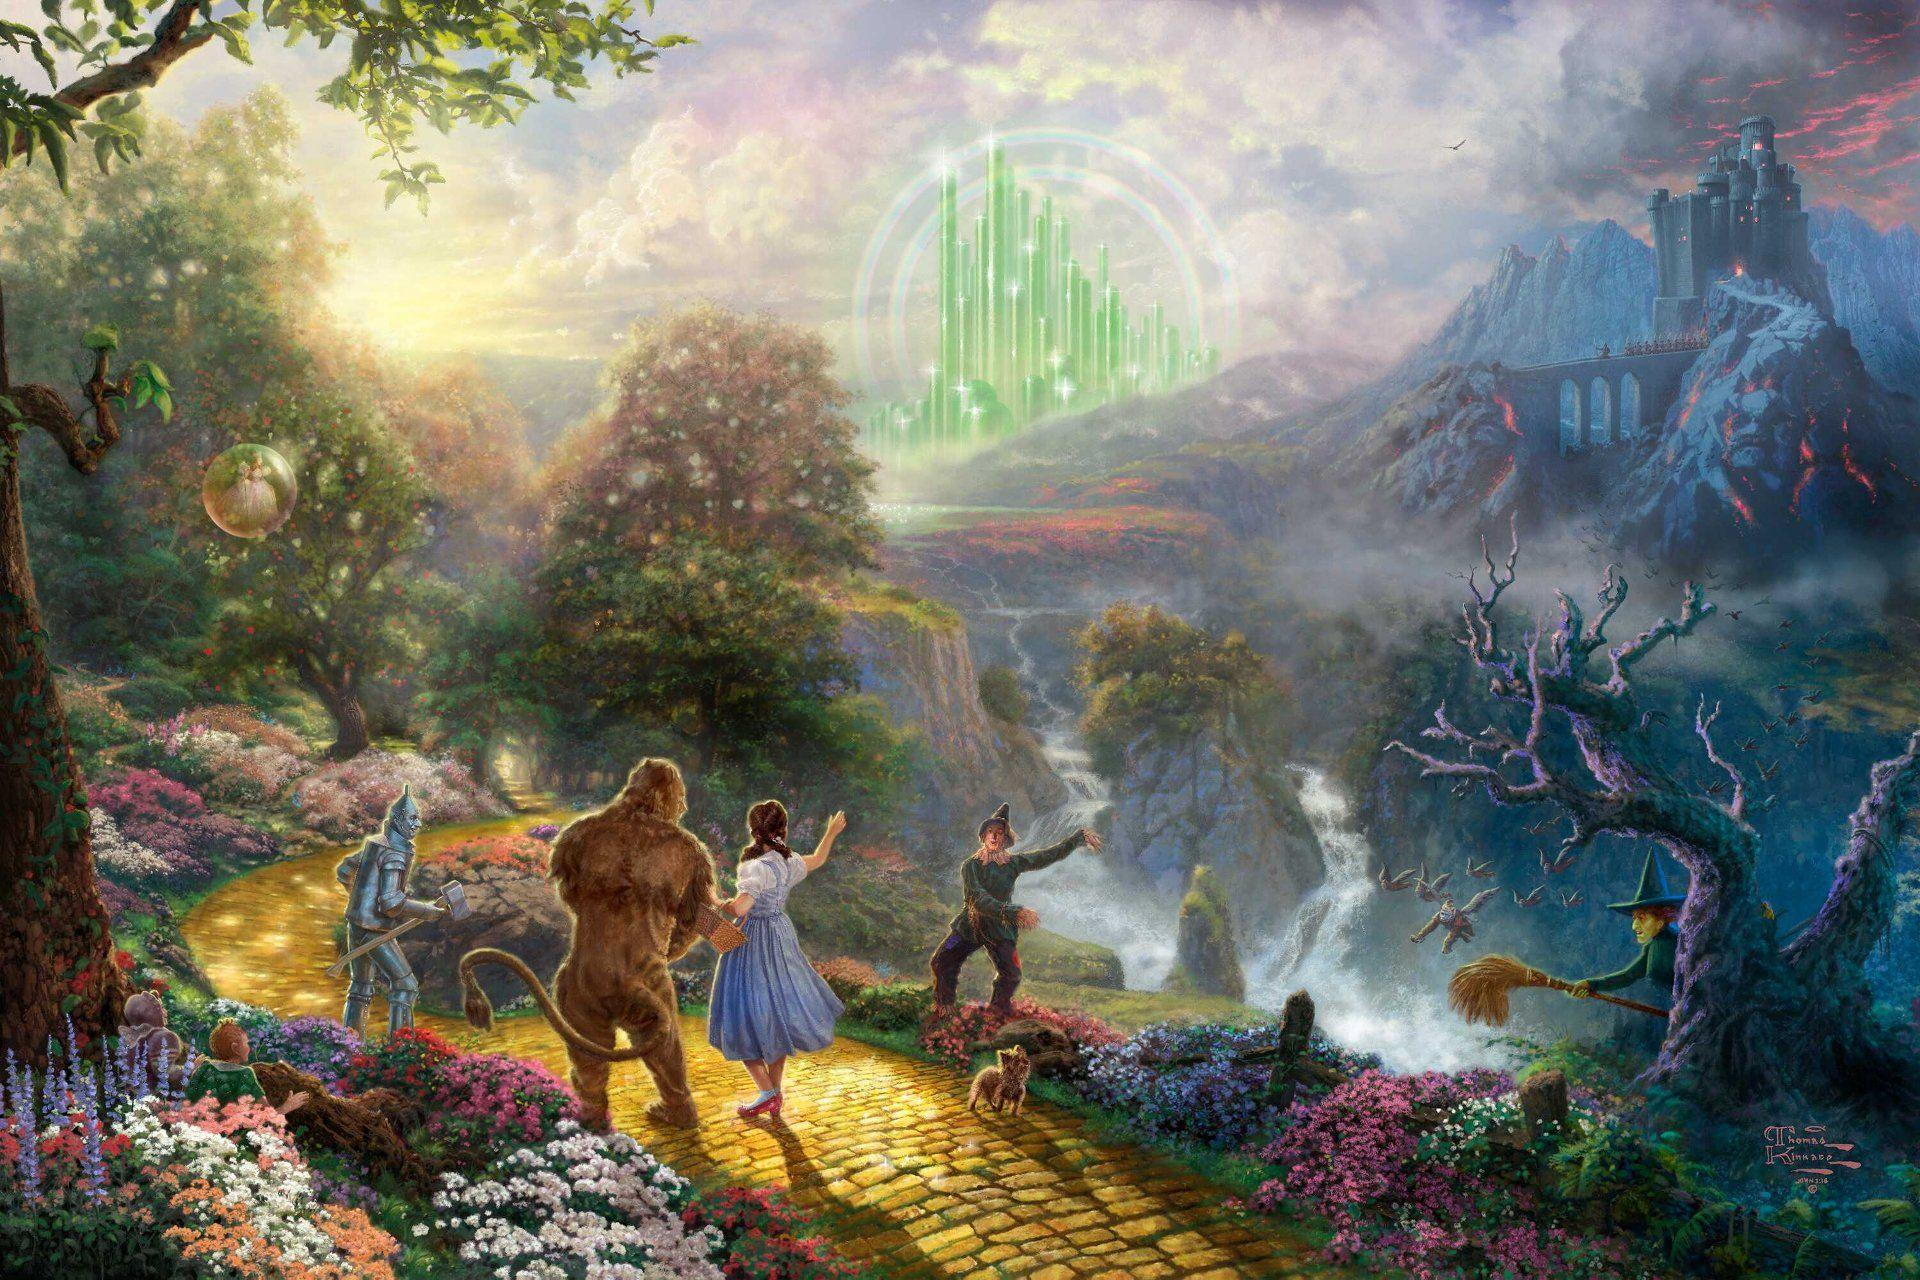 images Wizard Of Oz Wallpaper the wizard of oz wallpapers wallpaper